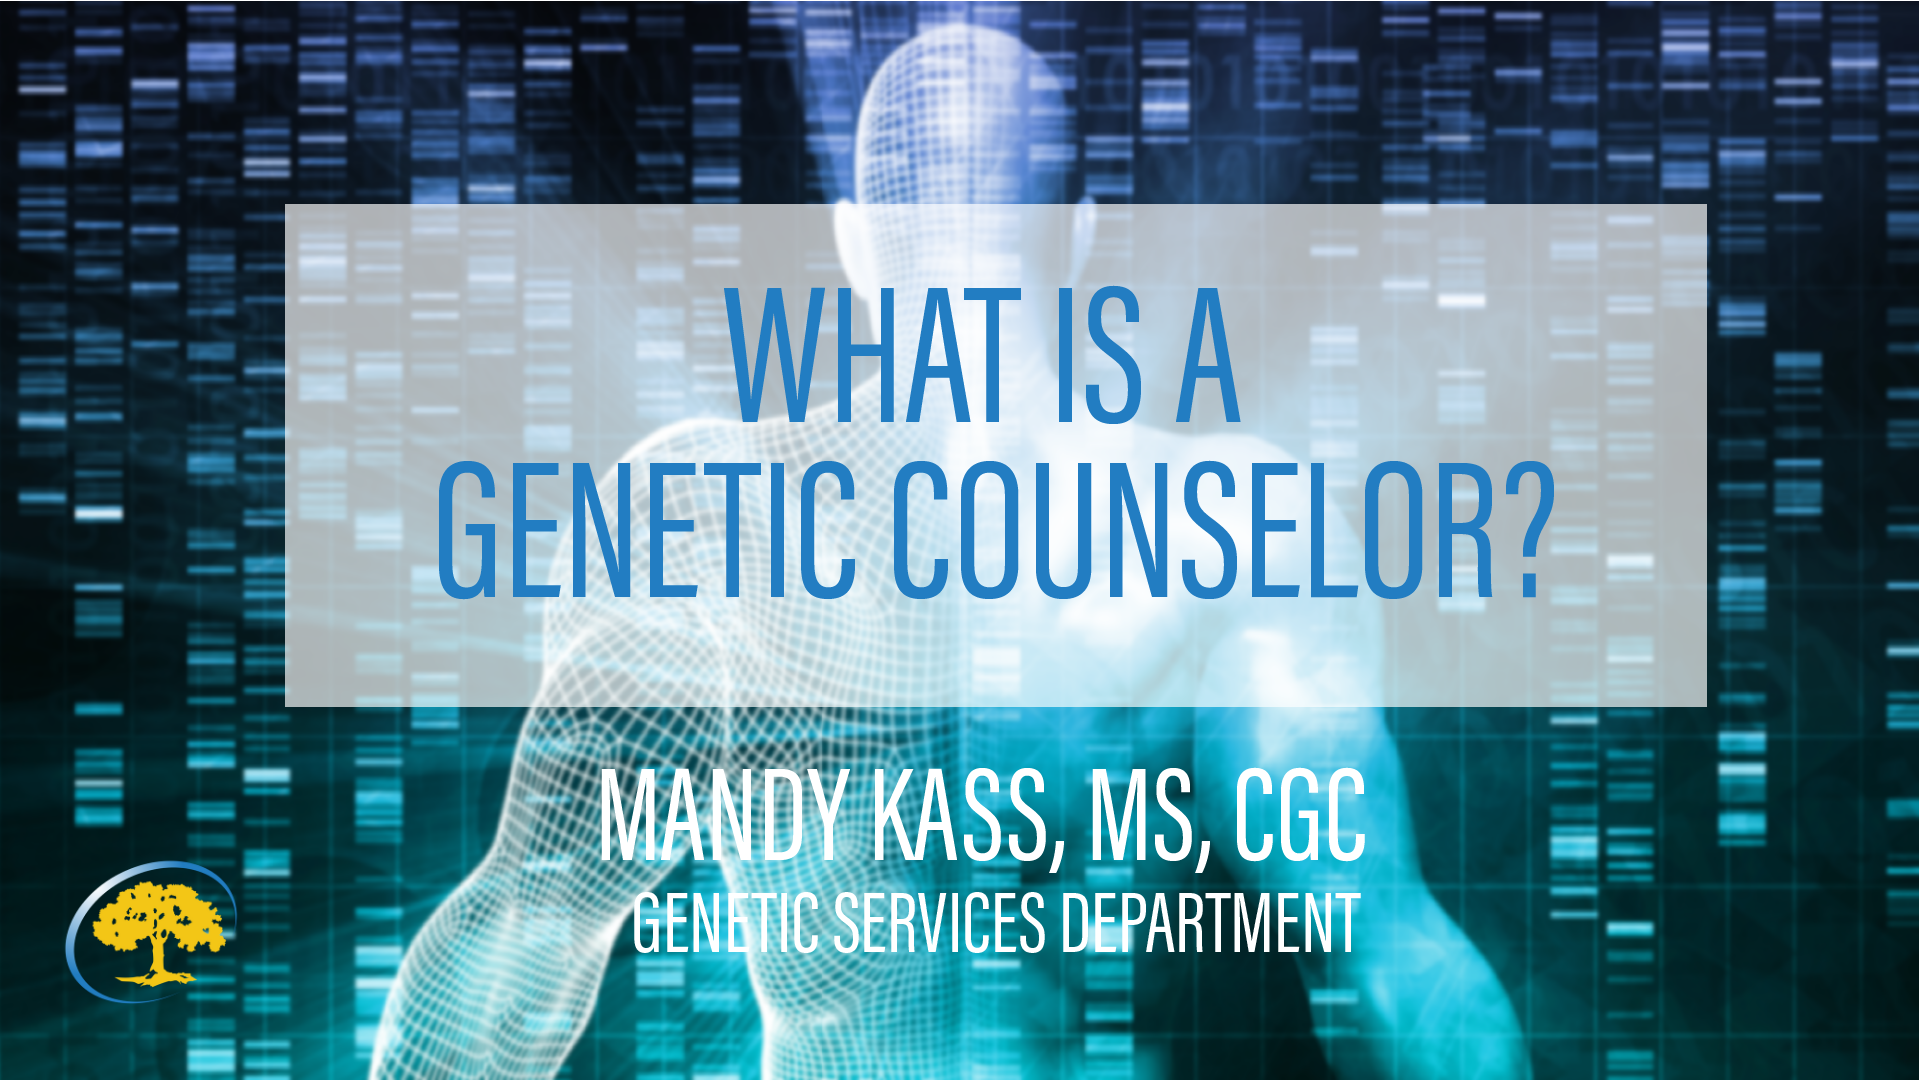 What is a genetic counselor